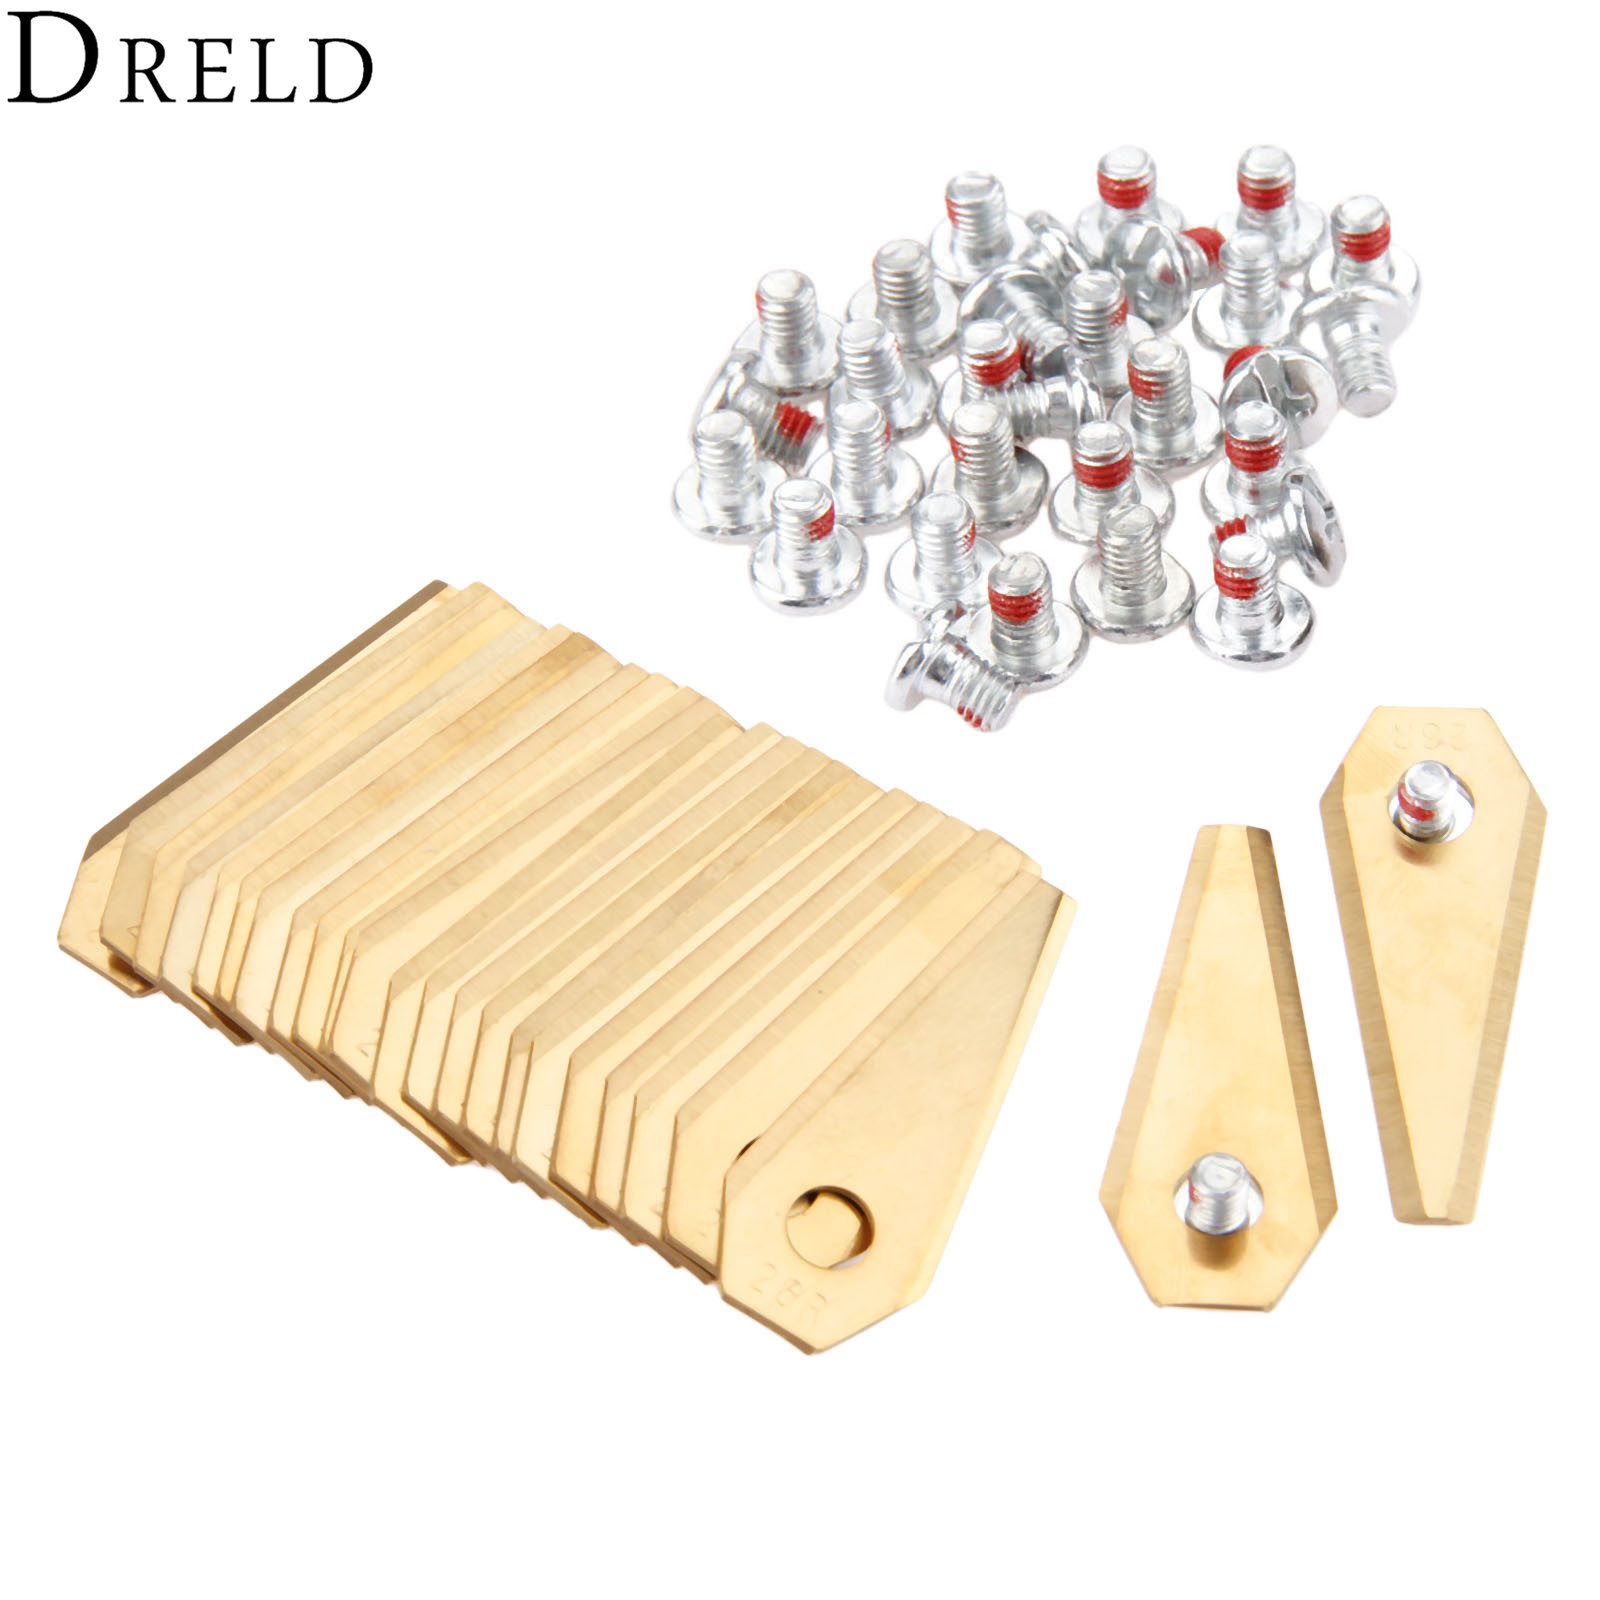 DRELD 30pcs Titanium Golden Robotic Mower Replacement Blade Fit For Bosch Indego Lawnmower With Screws Trimmer Parts Garden Tool